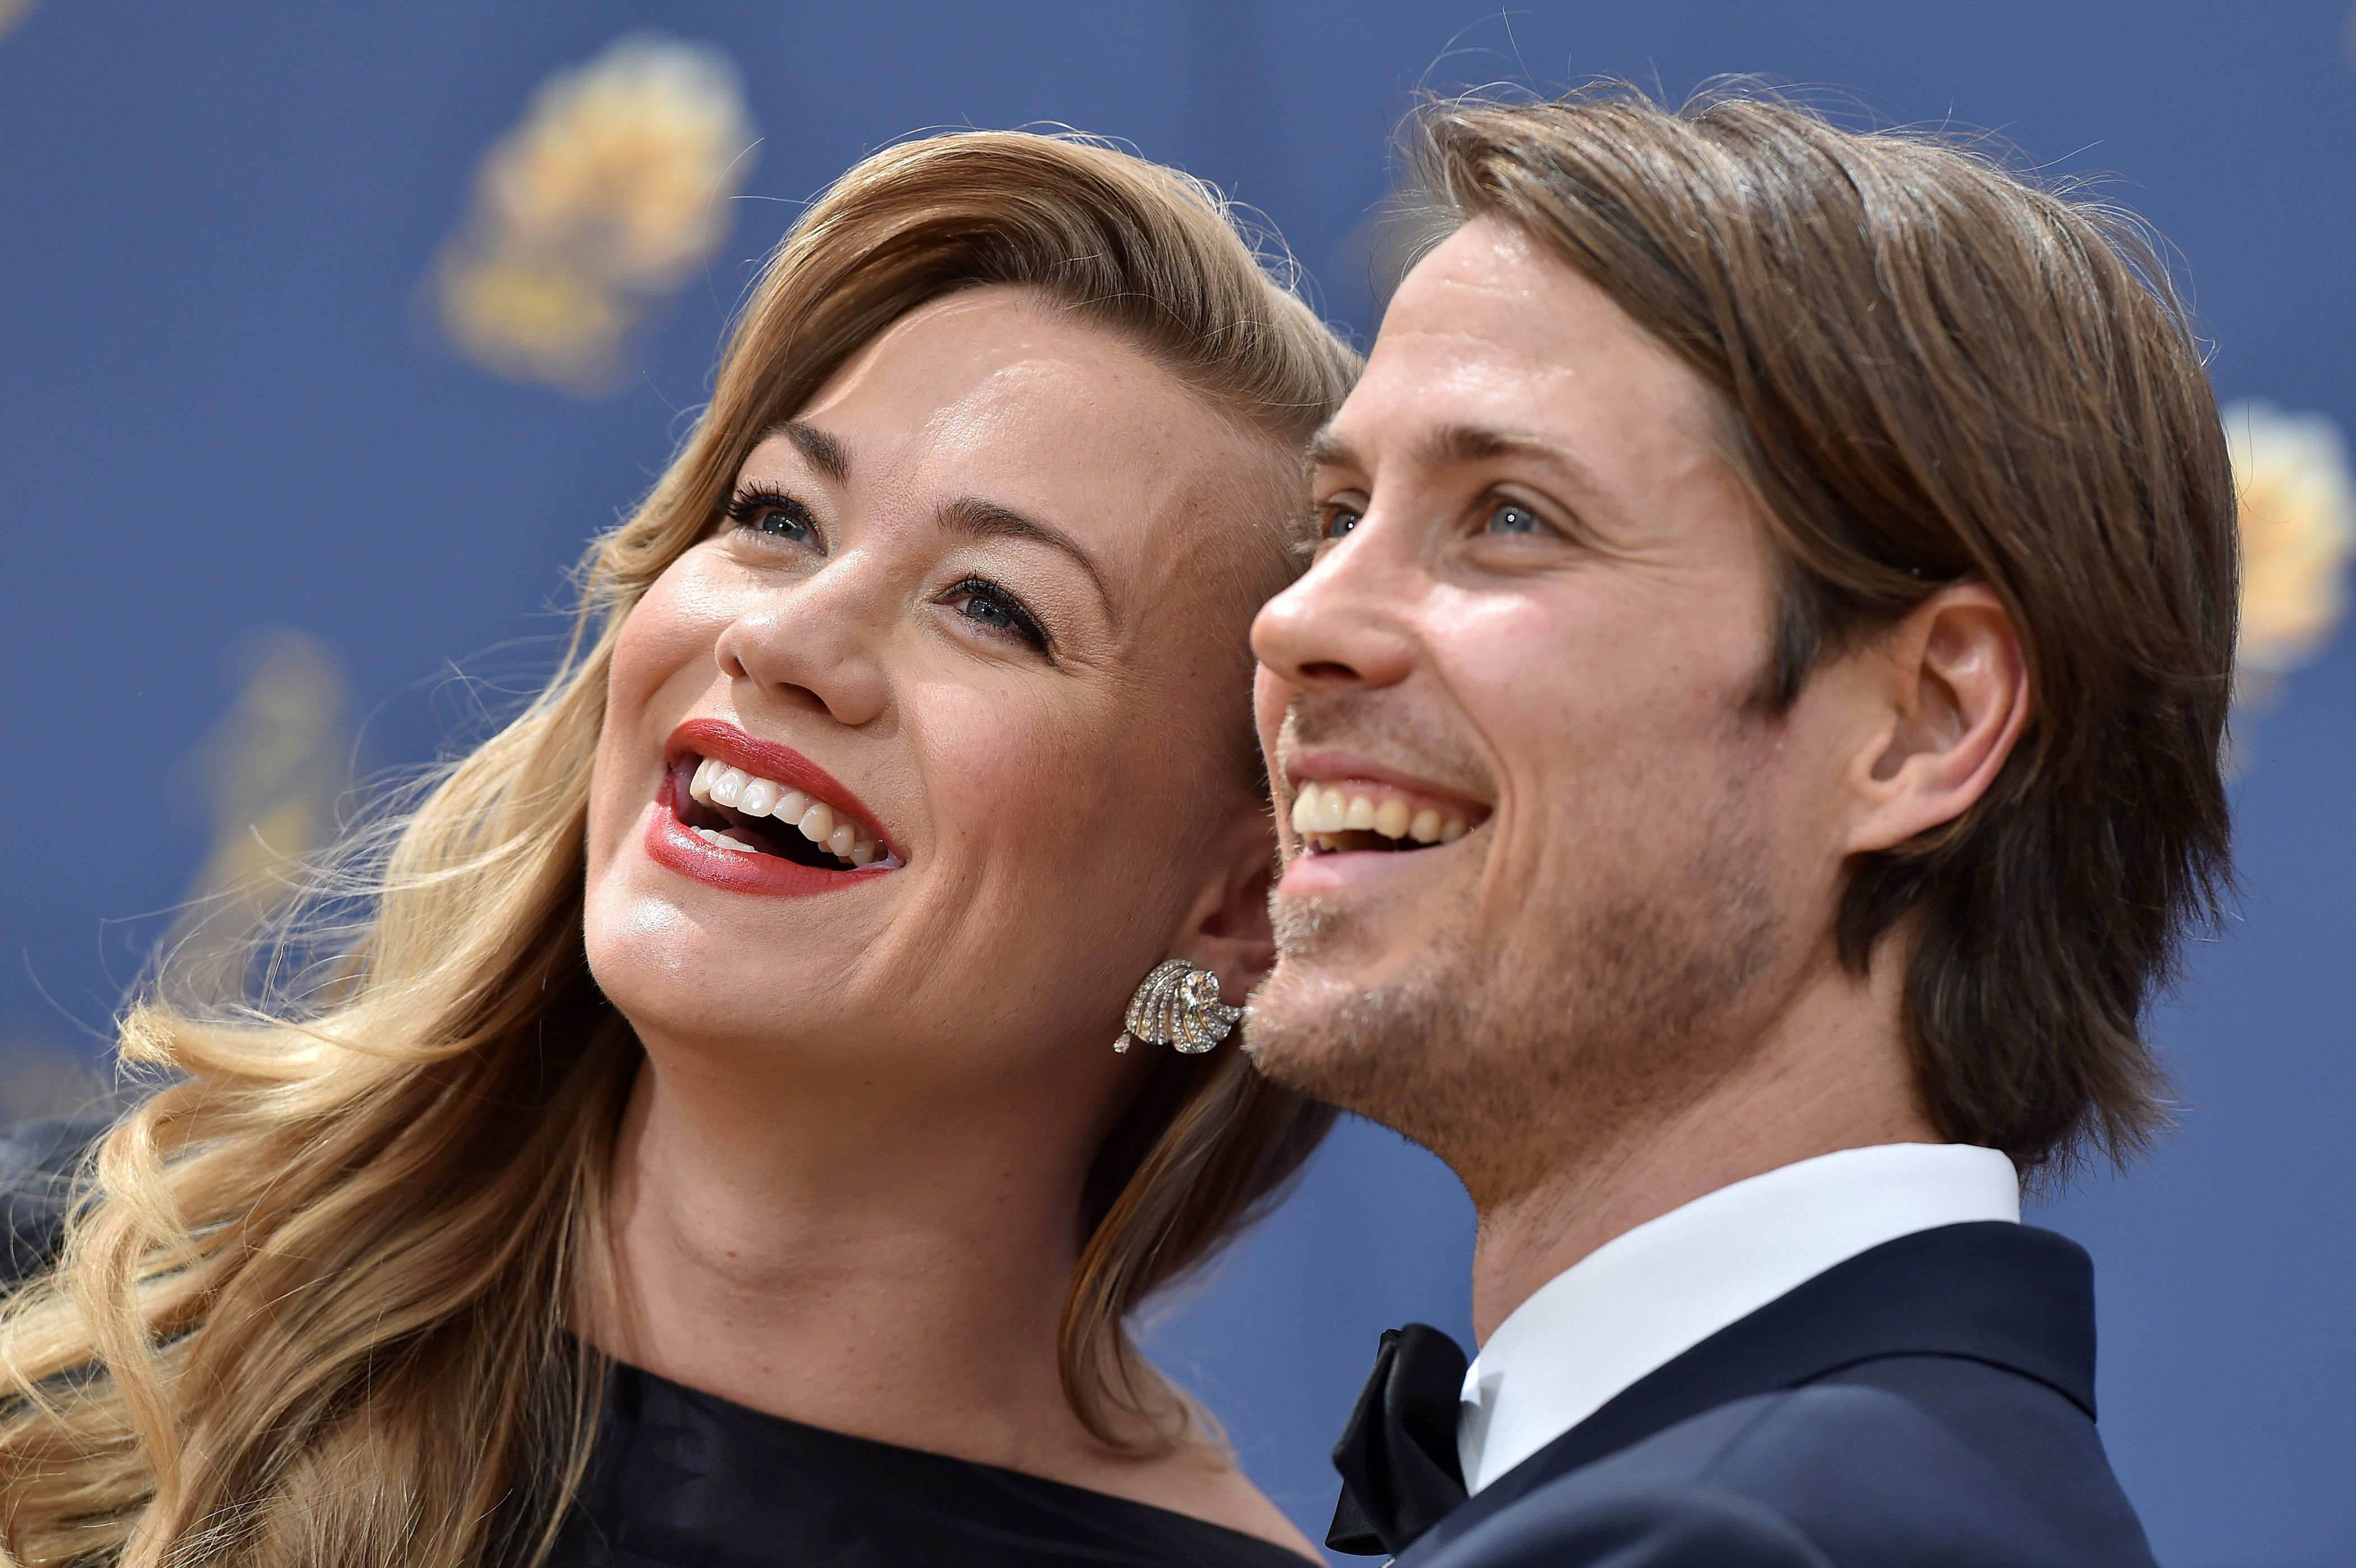 LOS ANGELES, CA - SEPTEMBER 17:  Yvonne Strahovski and Tim Loden attend the 70th Emmy Awards at Microsoft Theater on September 17, 2018 in Los Angeles, California.  (Photo by Axelle/Bauer-Griffin/FilmMagic)